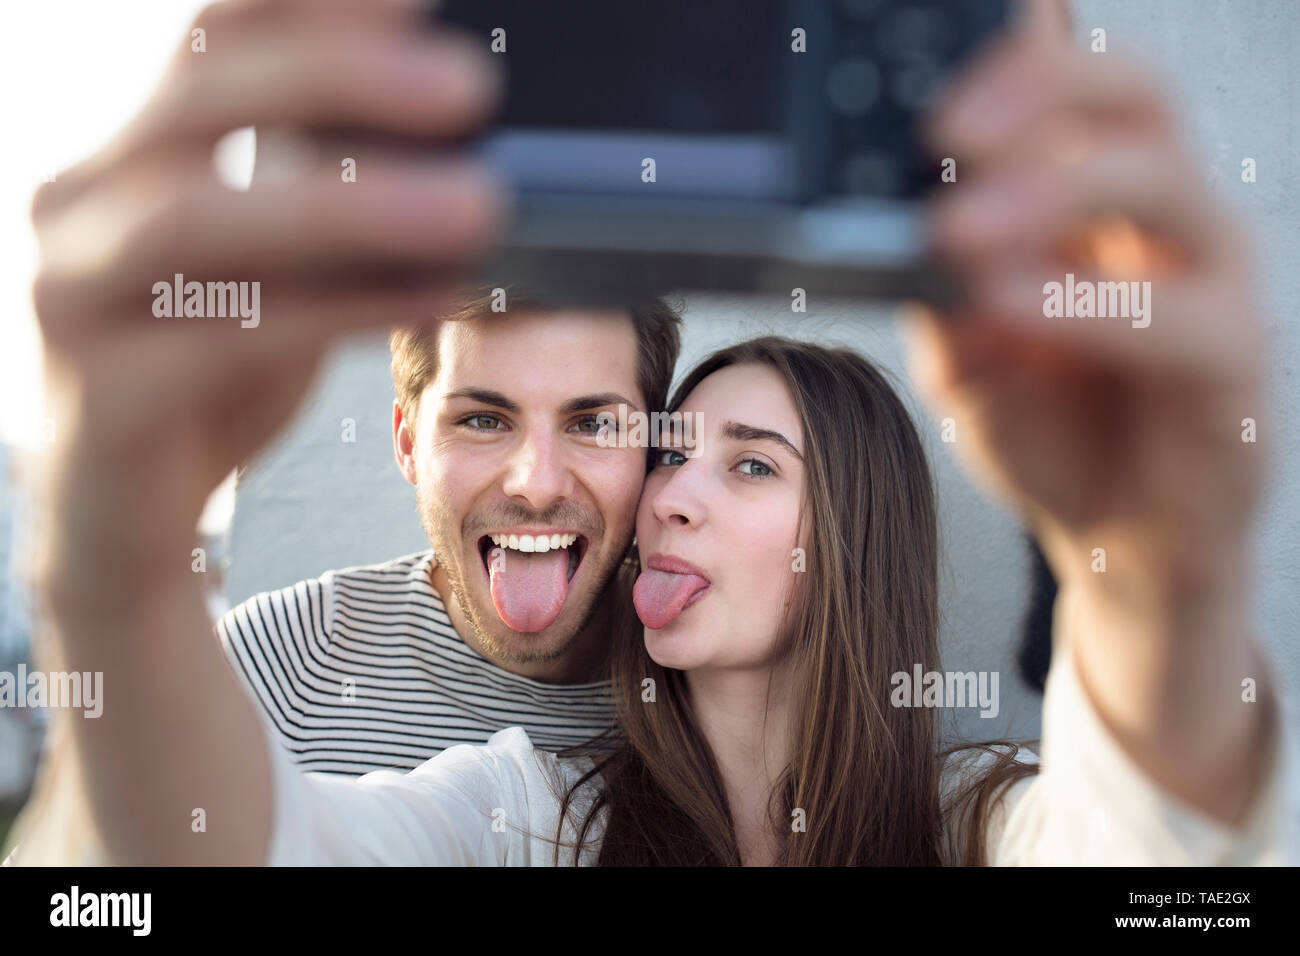 Playful young couple taking a selfie sticking tongues out - Stock Image